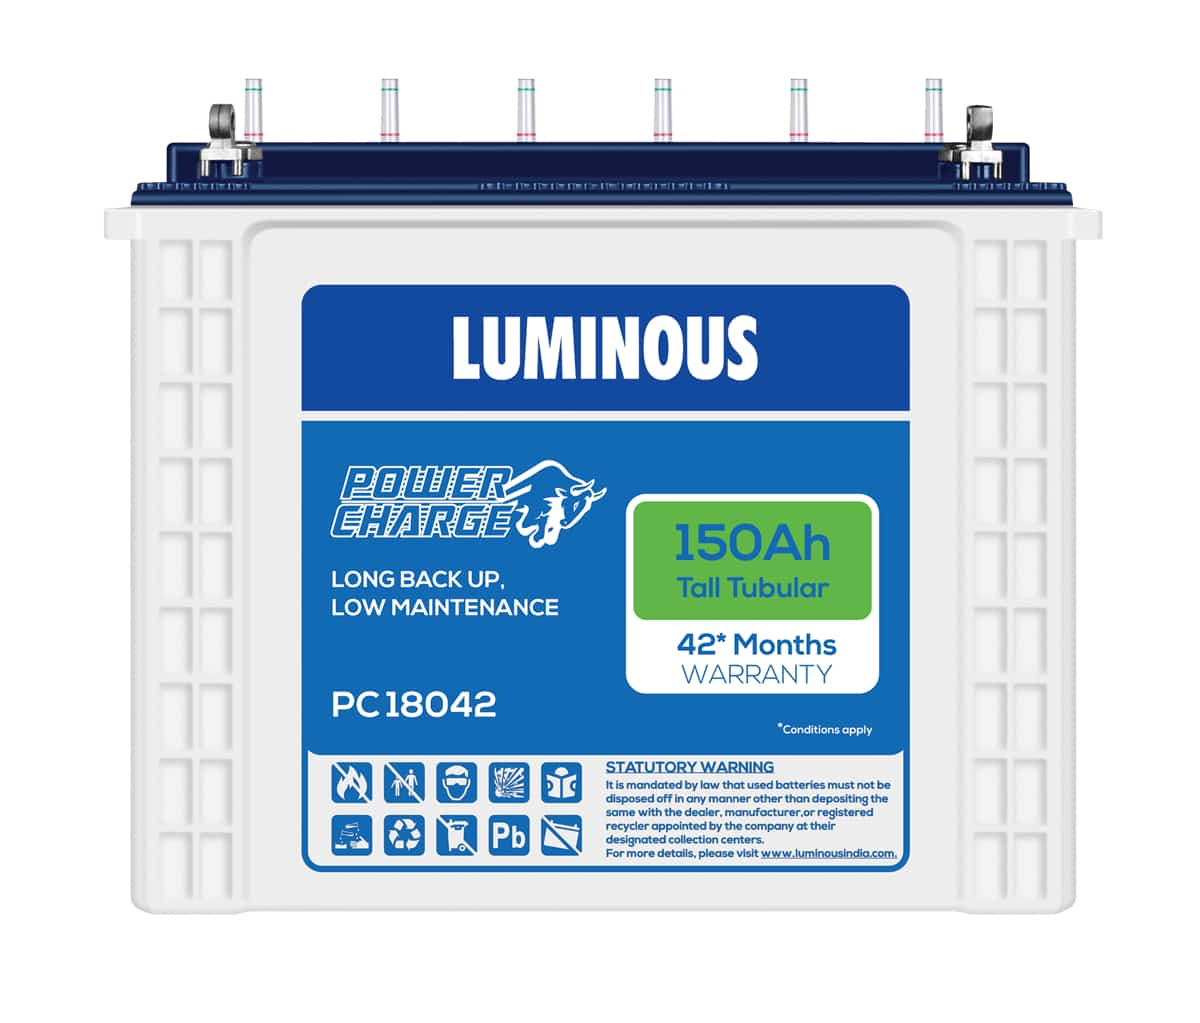 Luminous Power charge PC 18042 150AH Battery